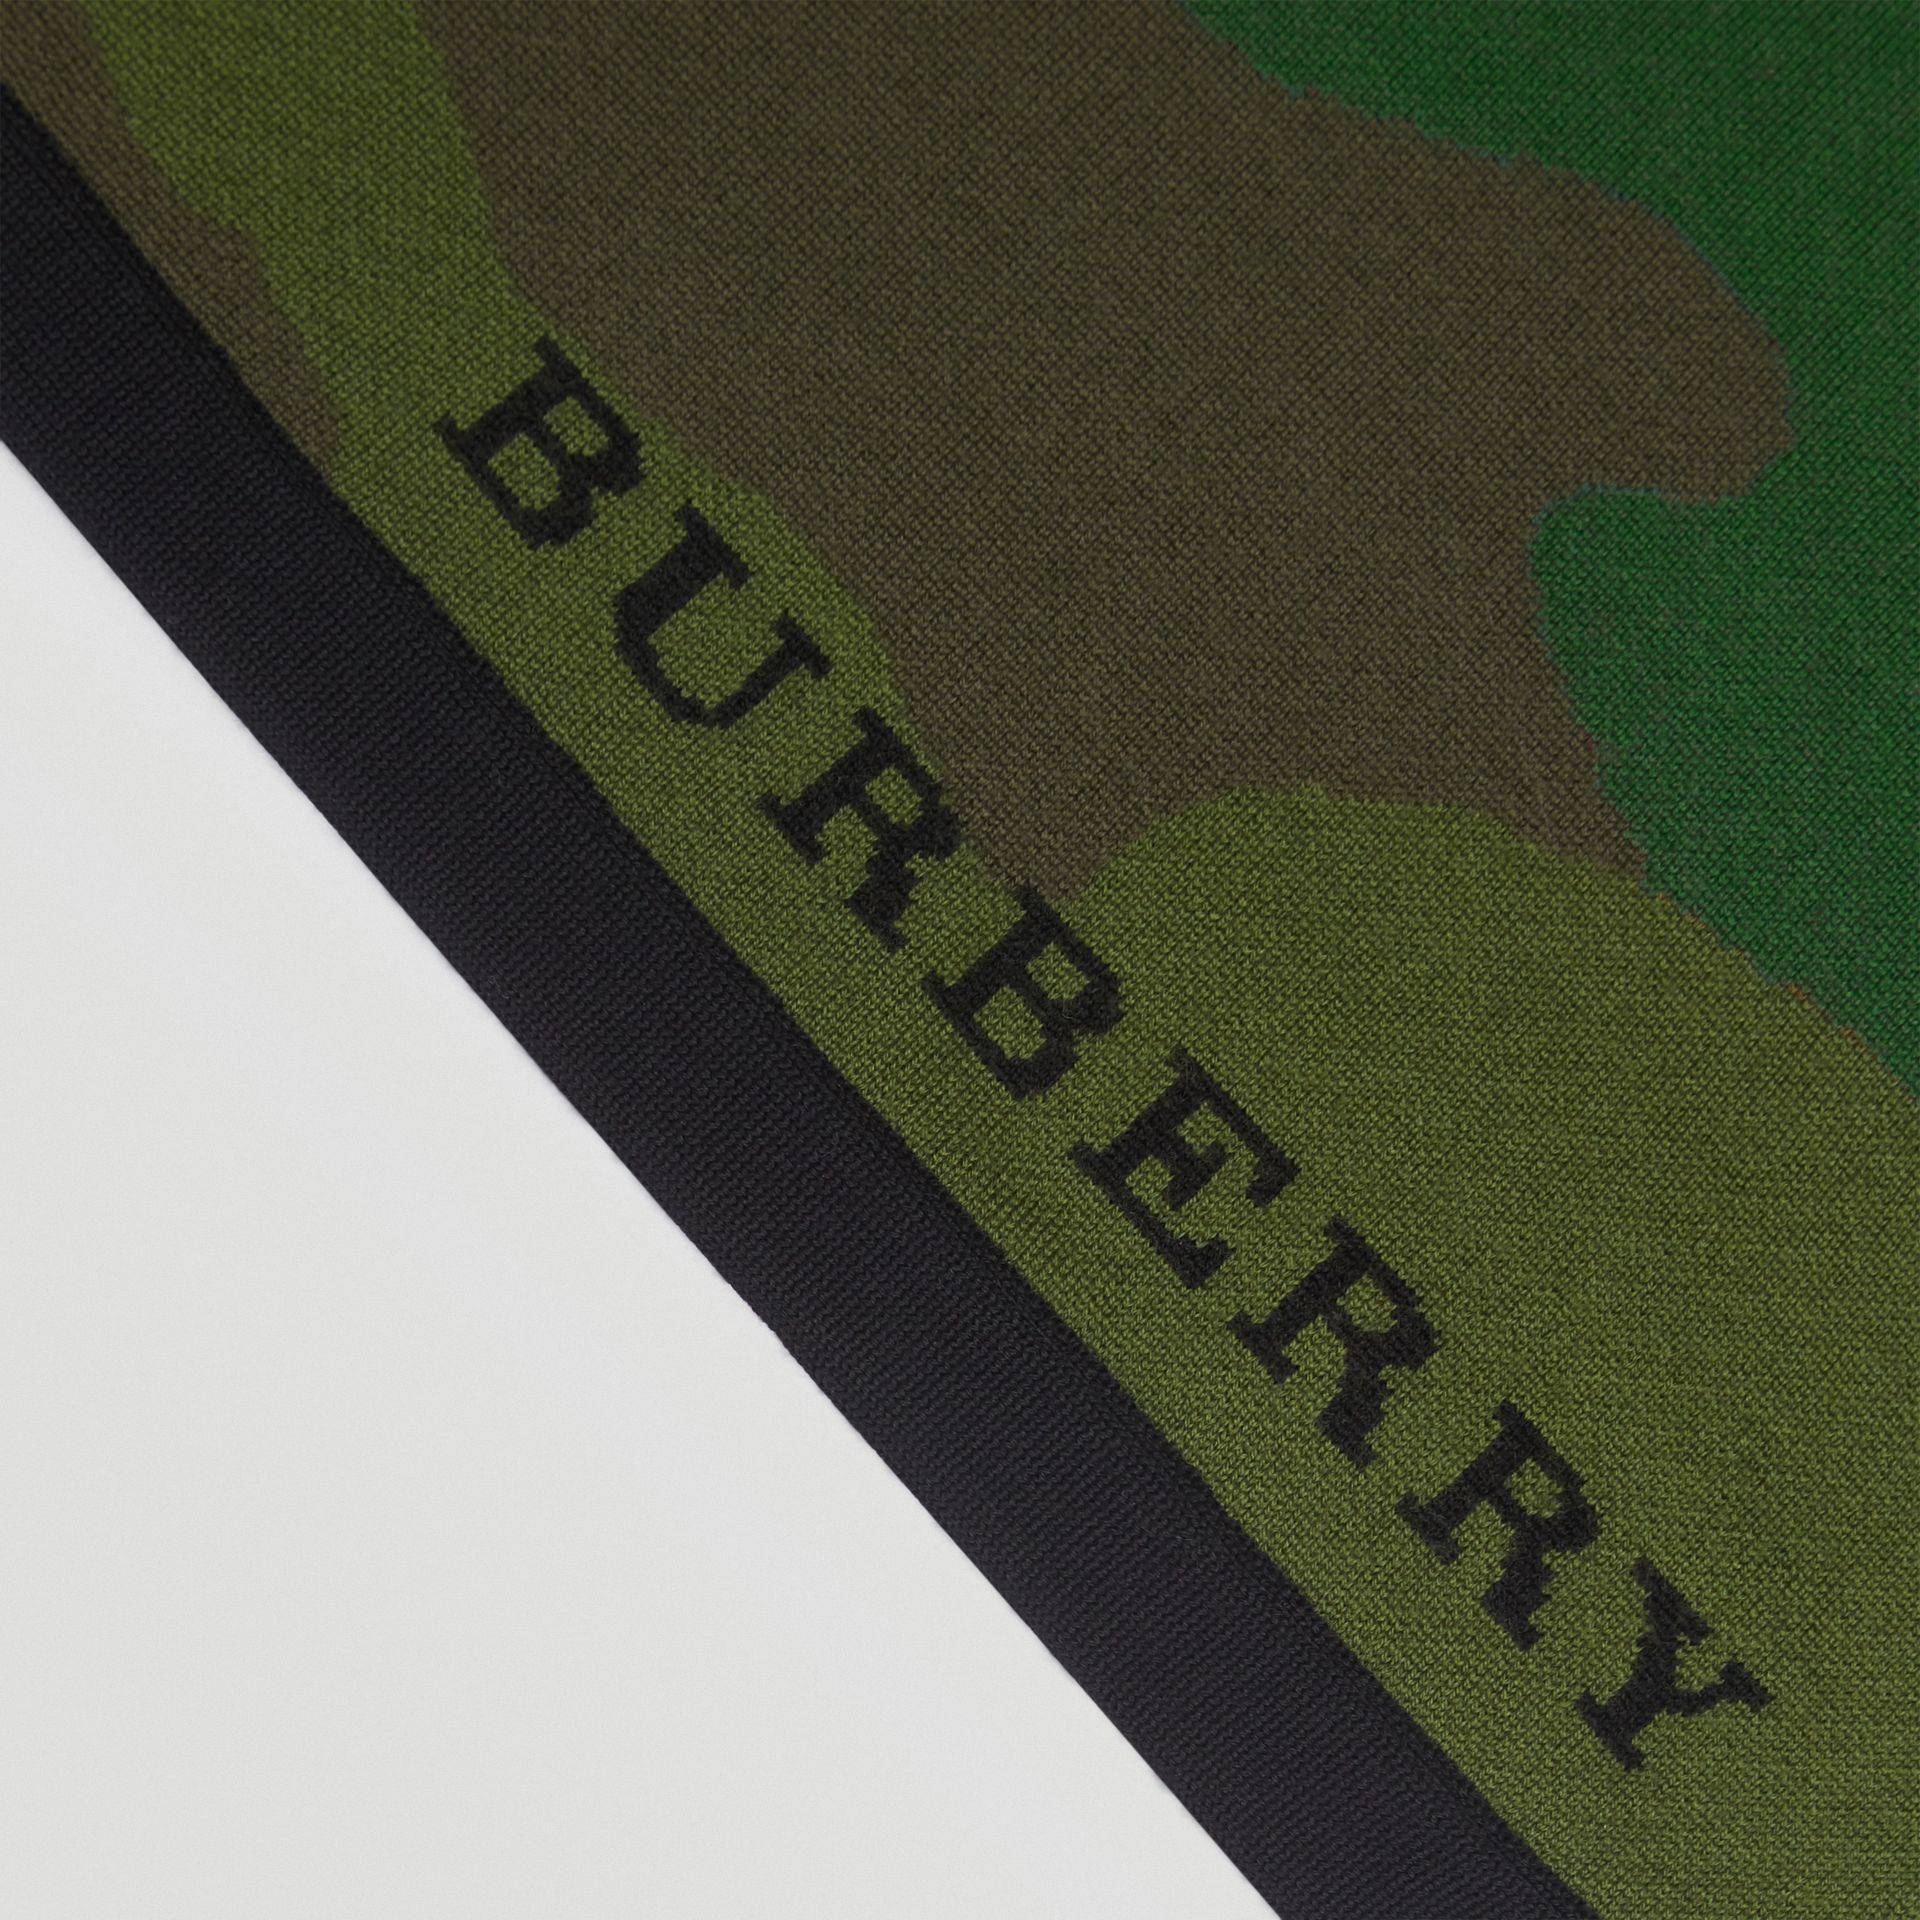 The Burberry Bandana in Camouflage Wool Blend in Khaki | Burberry - gallery image 1